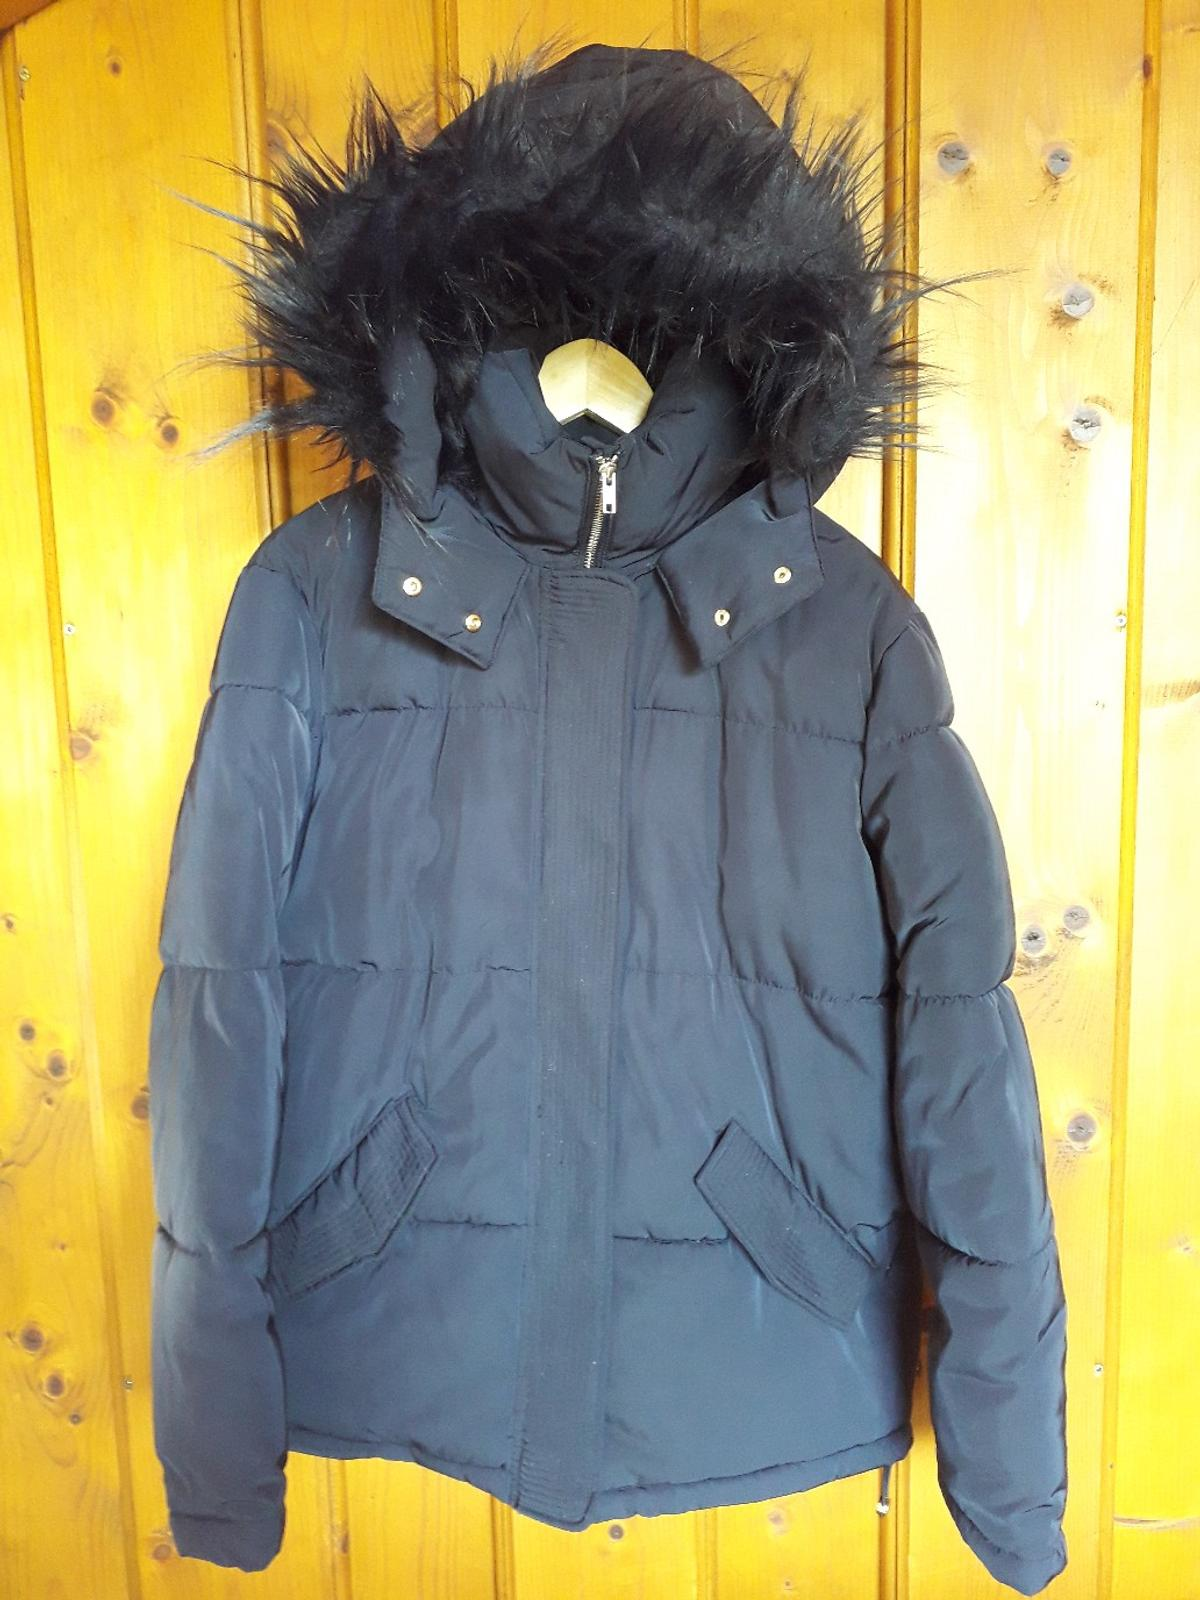 In €30 5212 Lengau Sale Damen Winterjacke 00 For Shpock 3c5jRq4LAS